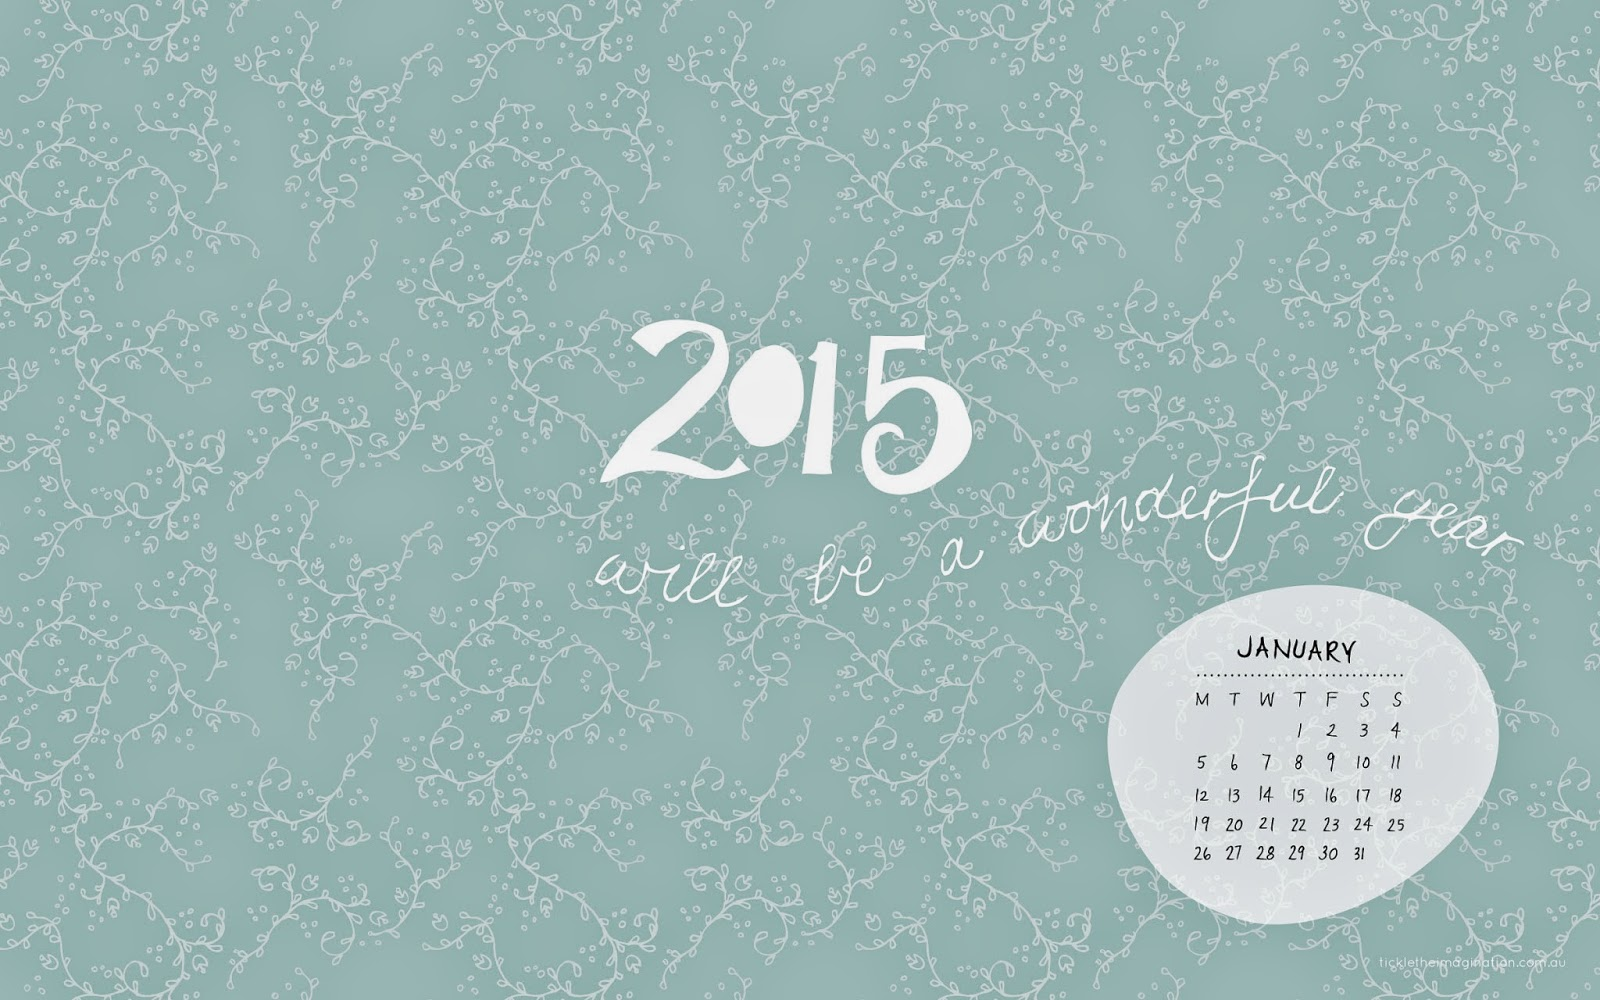 http://www.tickletheimagination.com.au/images/2015%20desktop%20calendars/january---2015-will-be-a-wonderful-year2.jpg